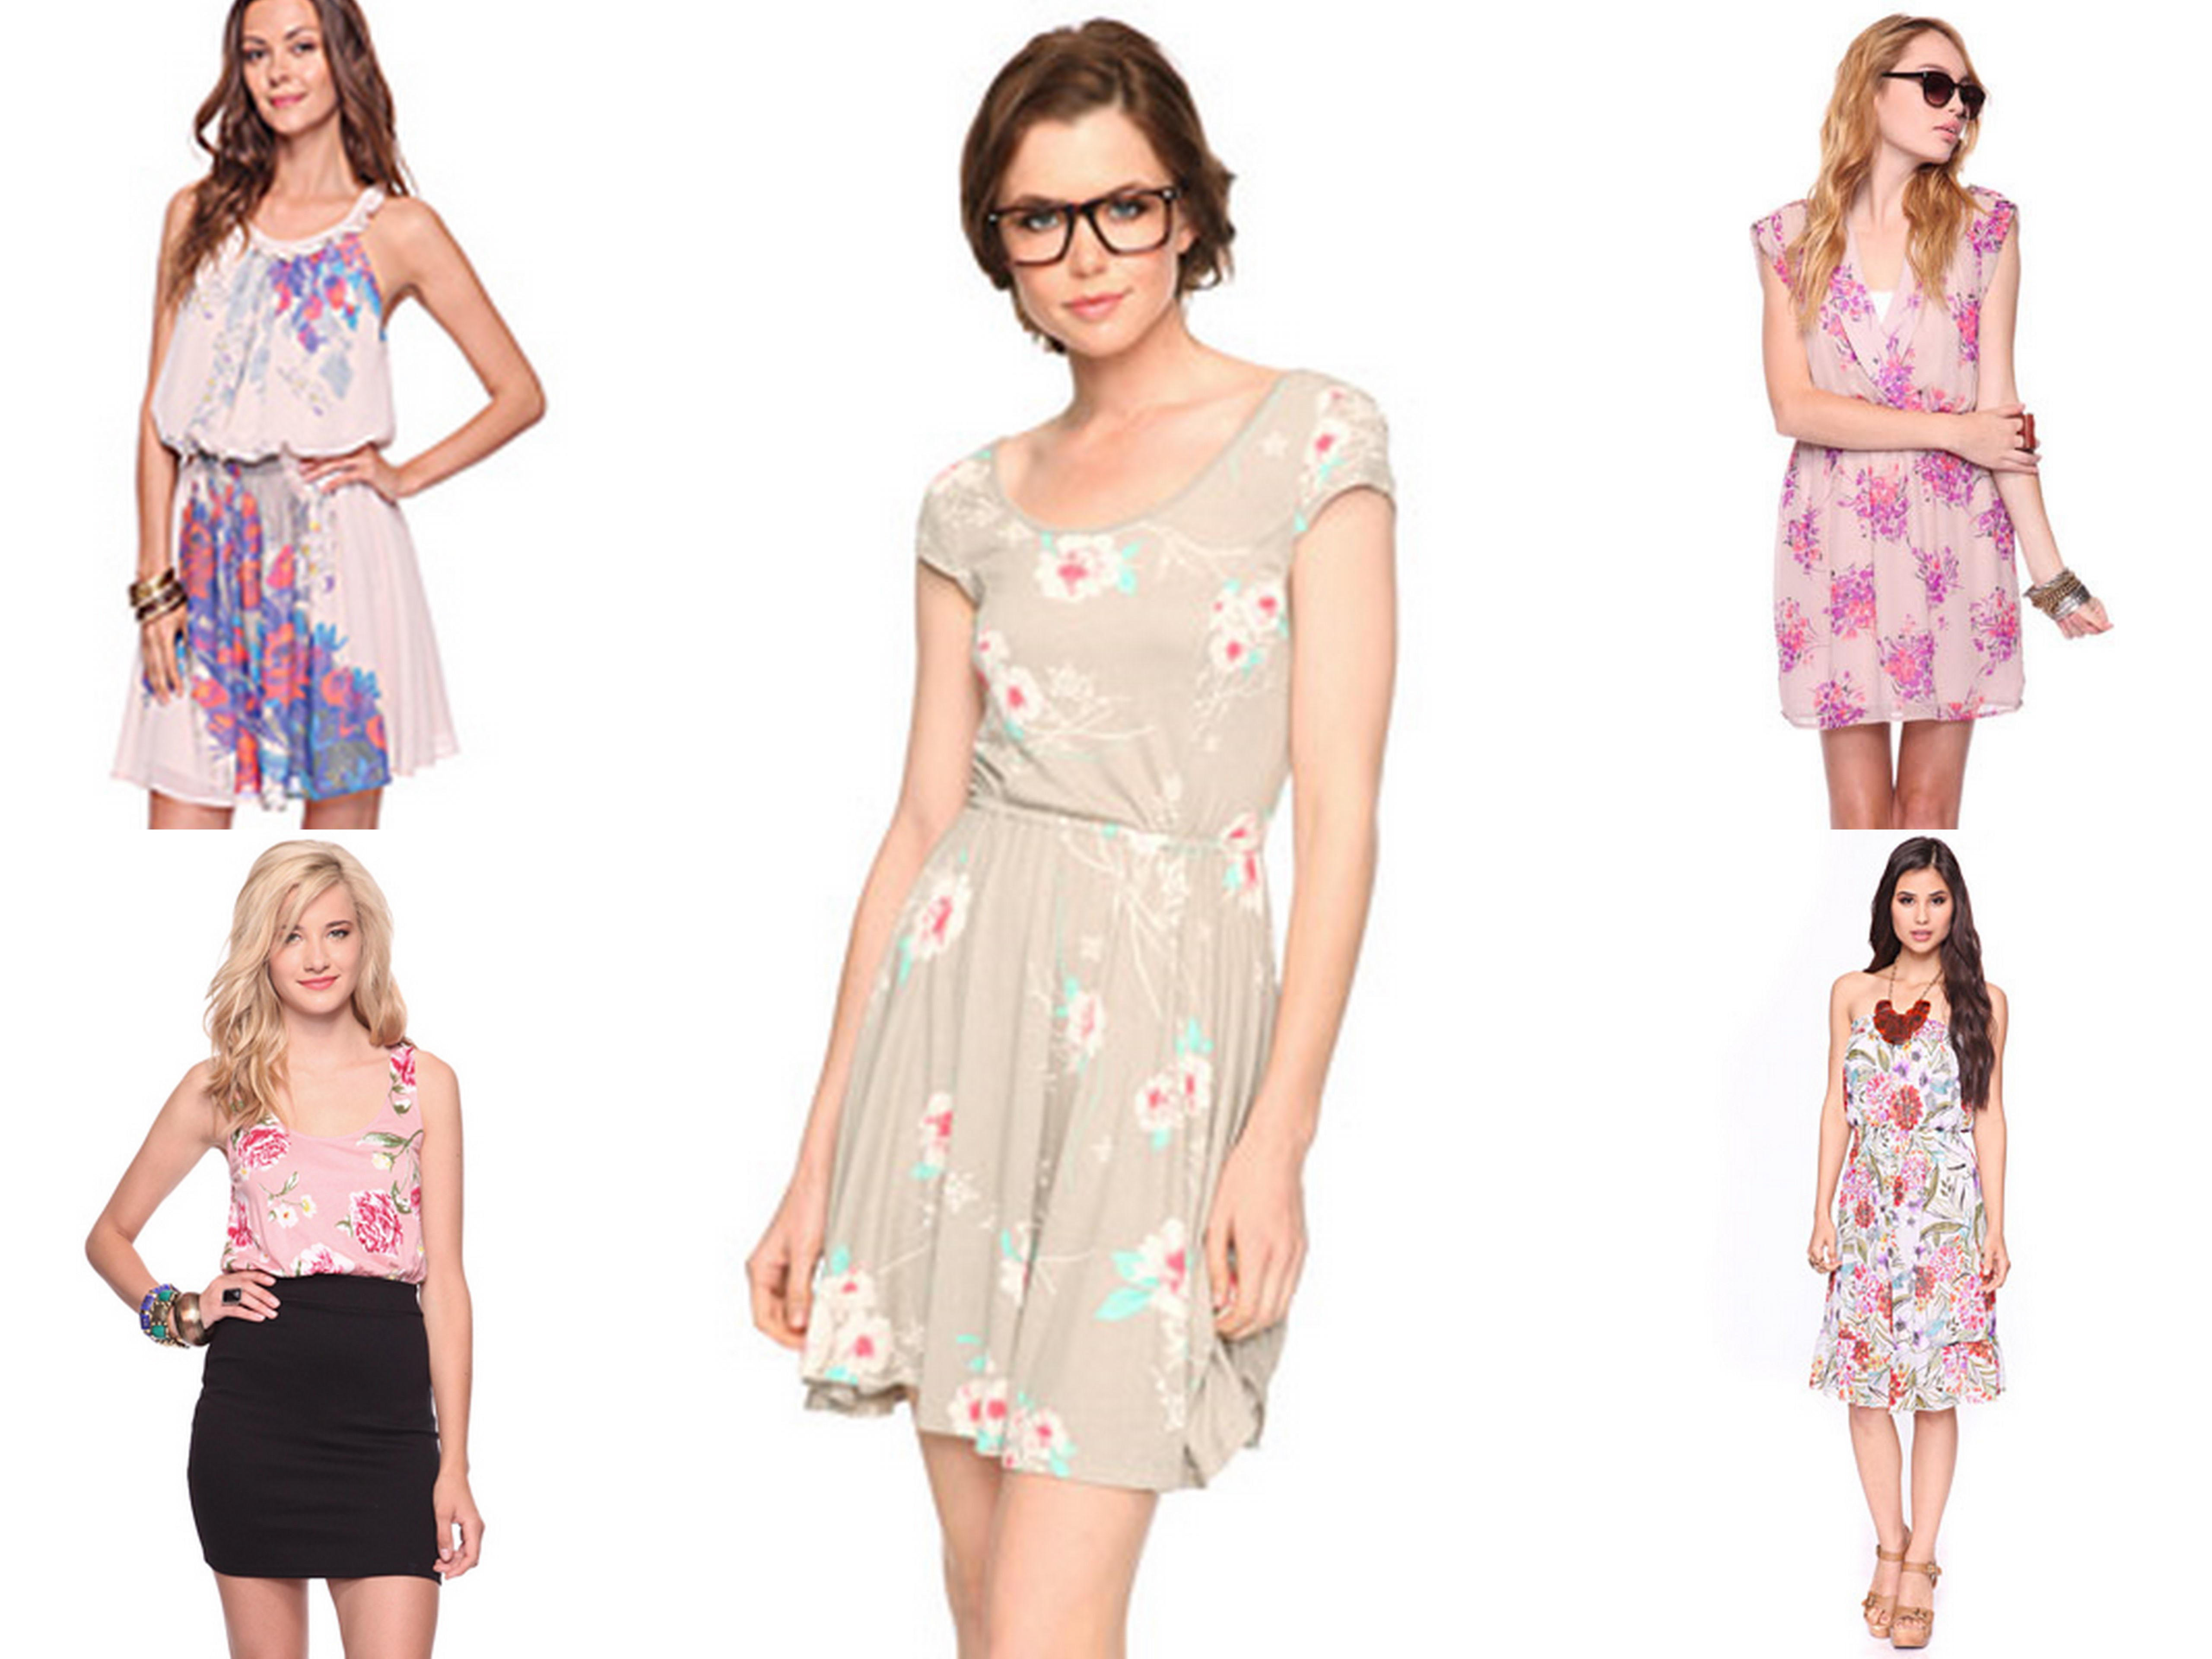 Inspired by Forever 21 for Bridesmaids Inspired By This